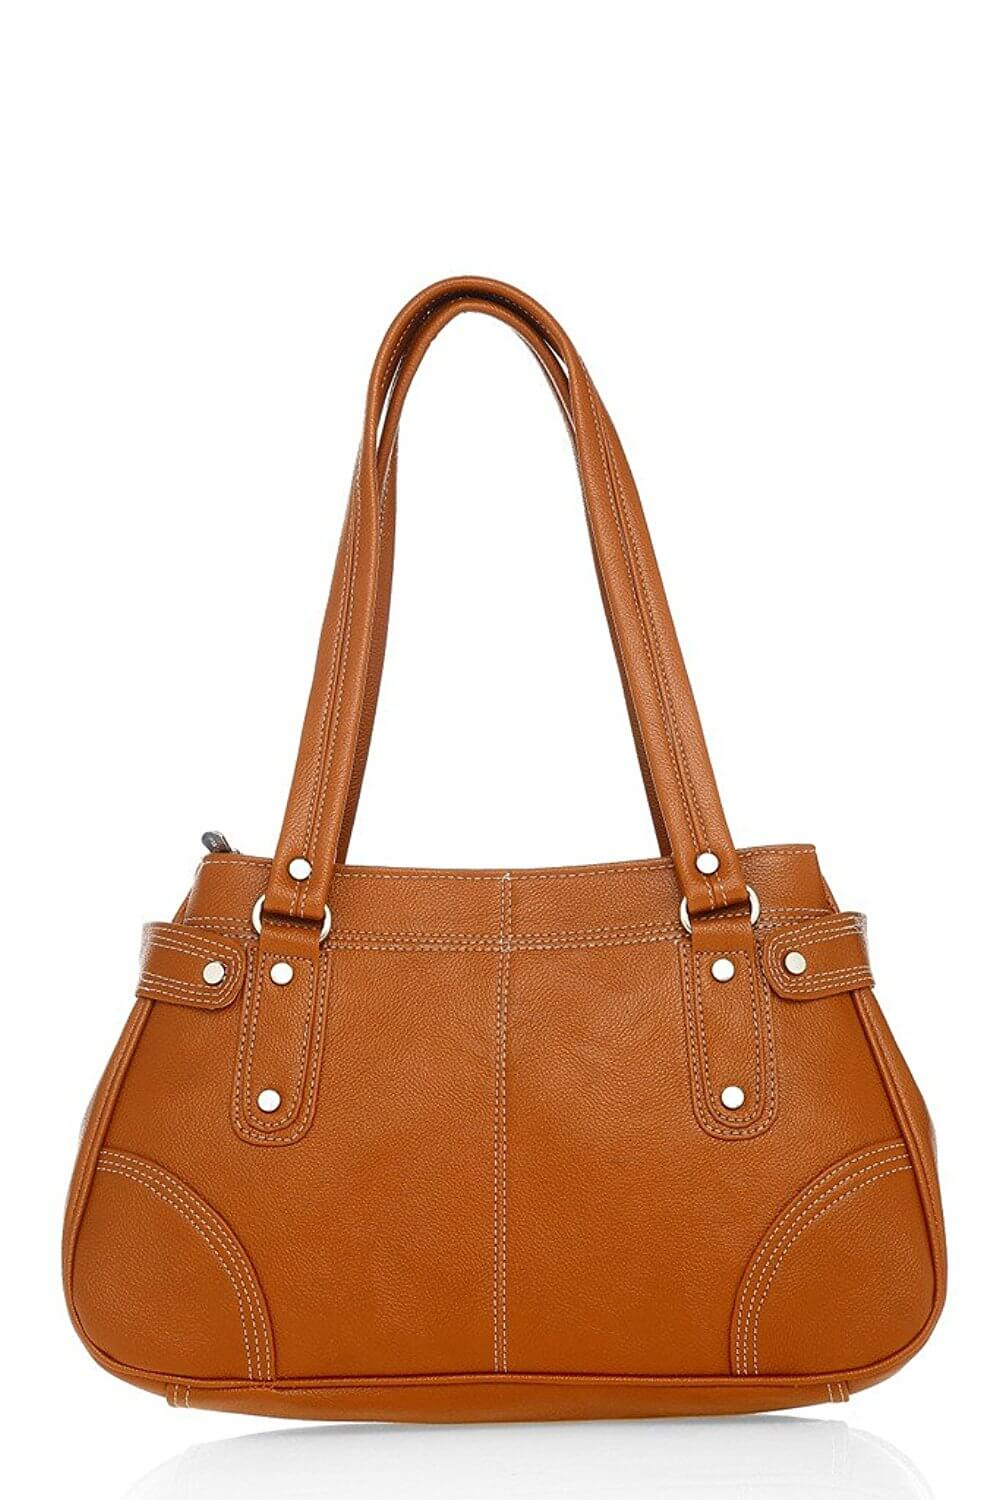 Lady queen casual bag LD - 370